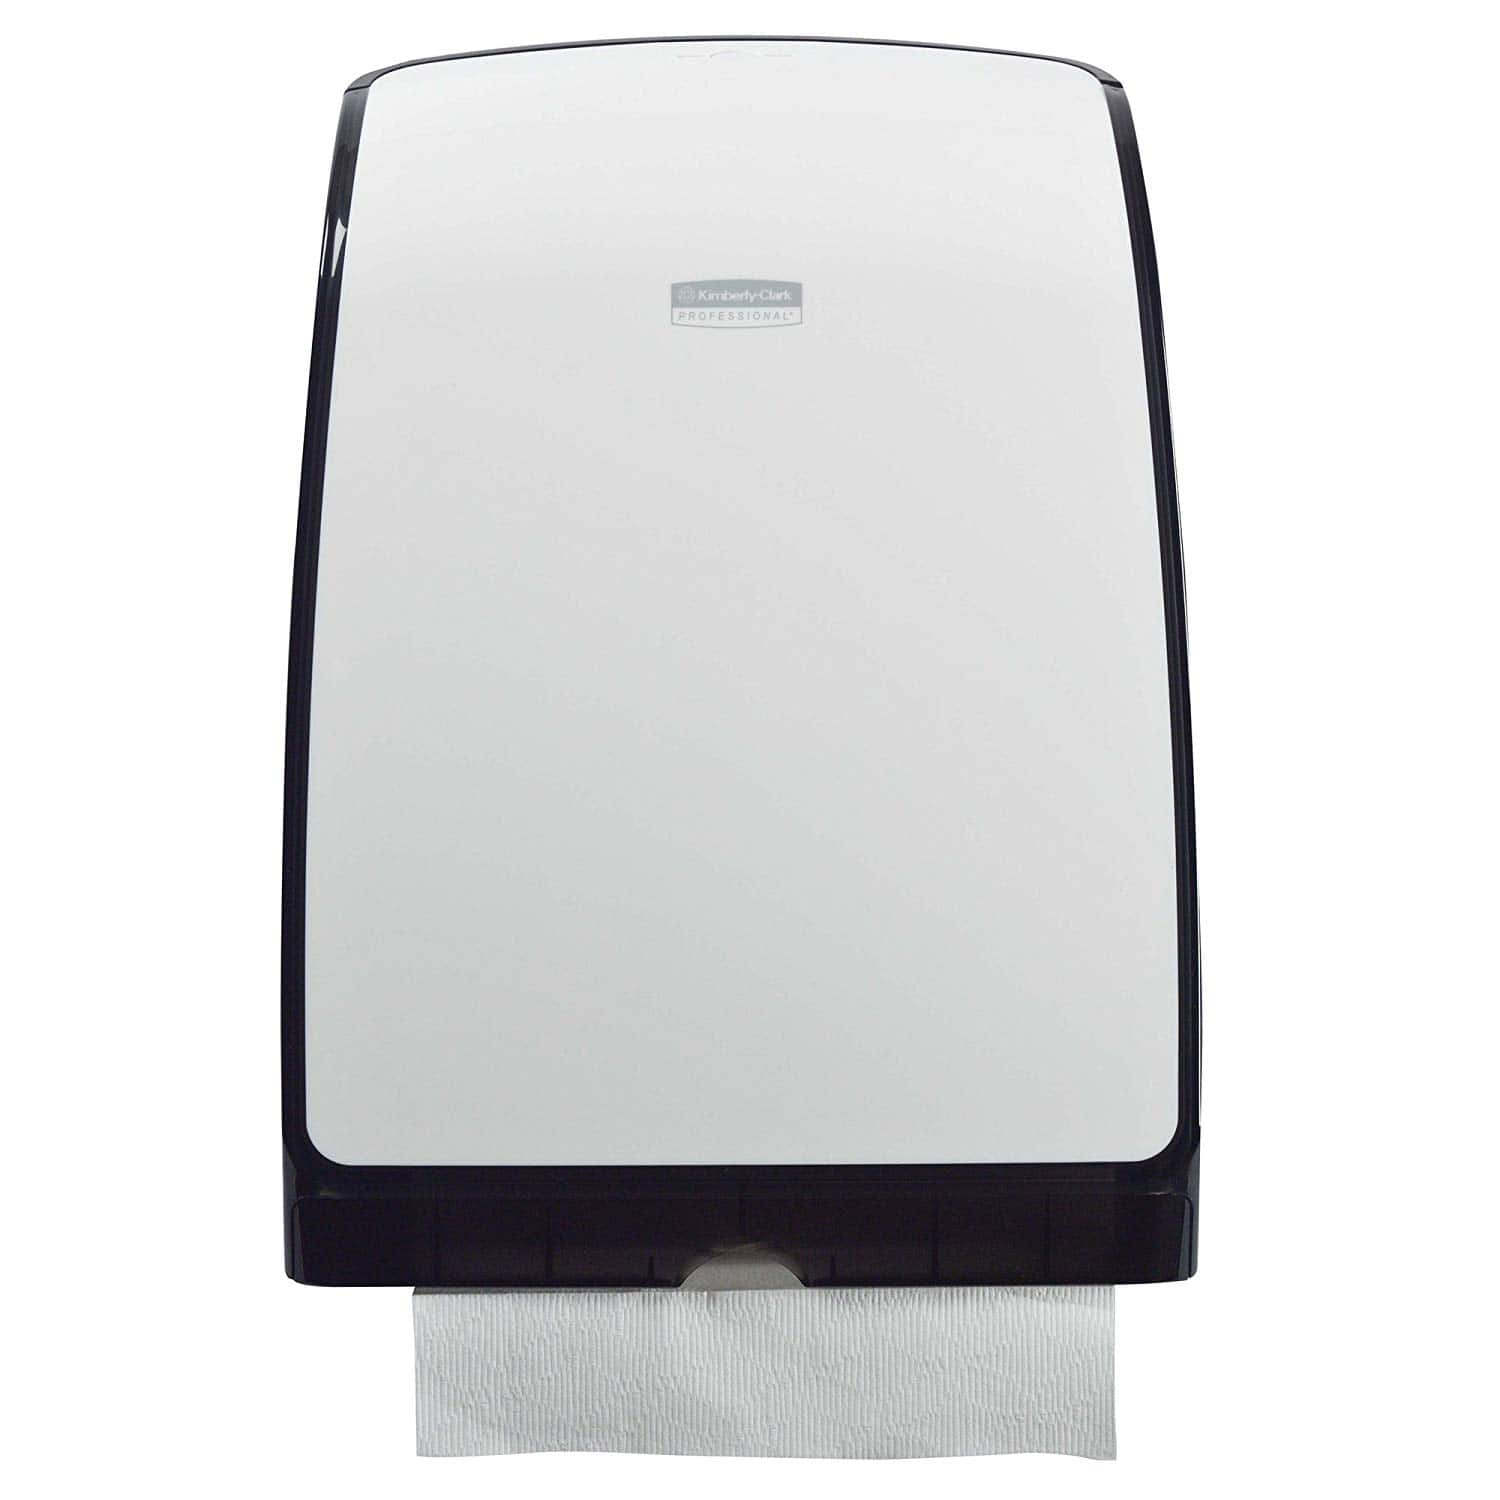 """Scott Control MOD Slimfold Folded Paper Towel Dispenser (34830), 9.83"""" x 2.8"""" x 13.67"""", Compact, One-at-a-Time Manual Dispensing, White 5.31 w/s&s"""